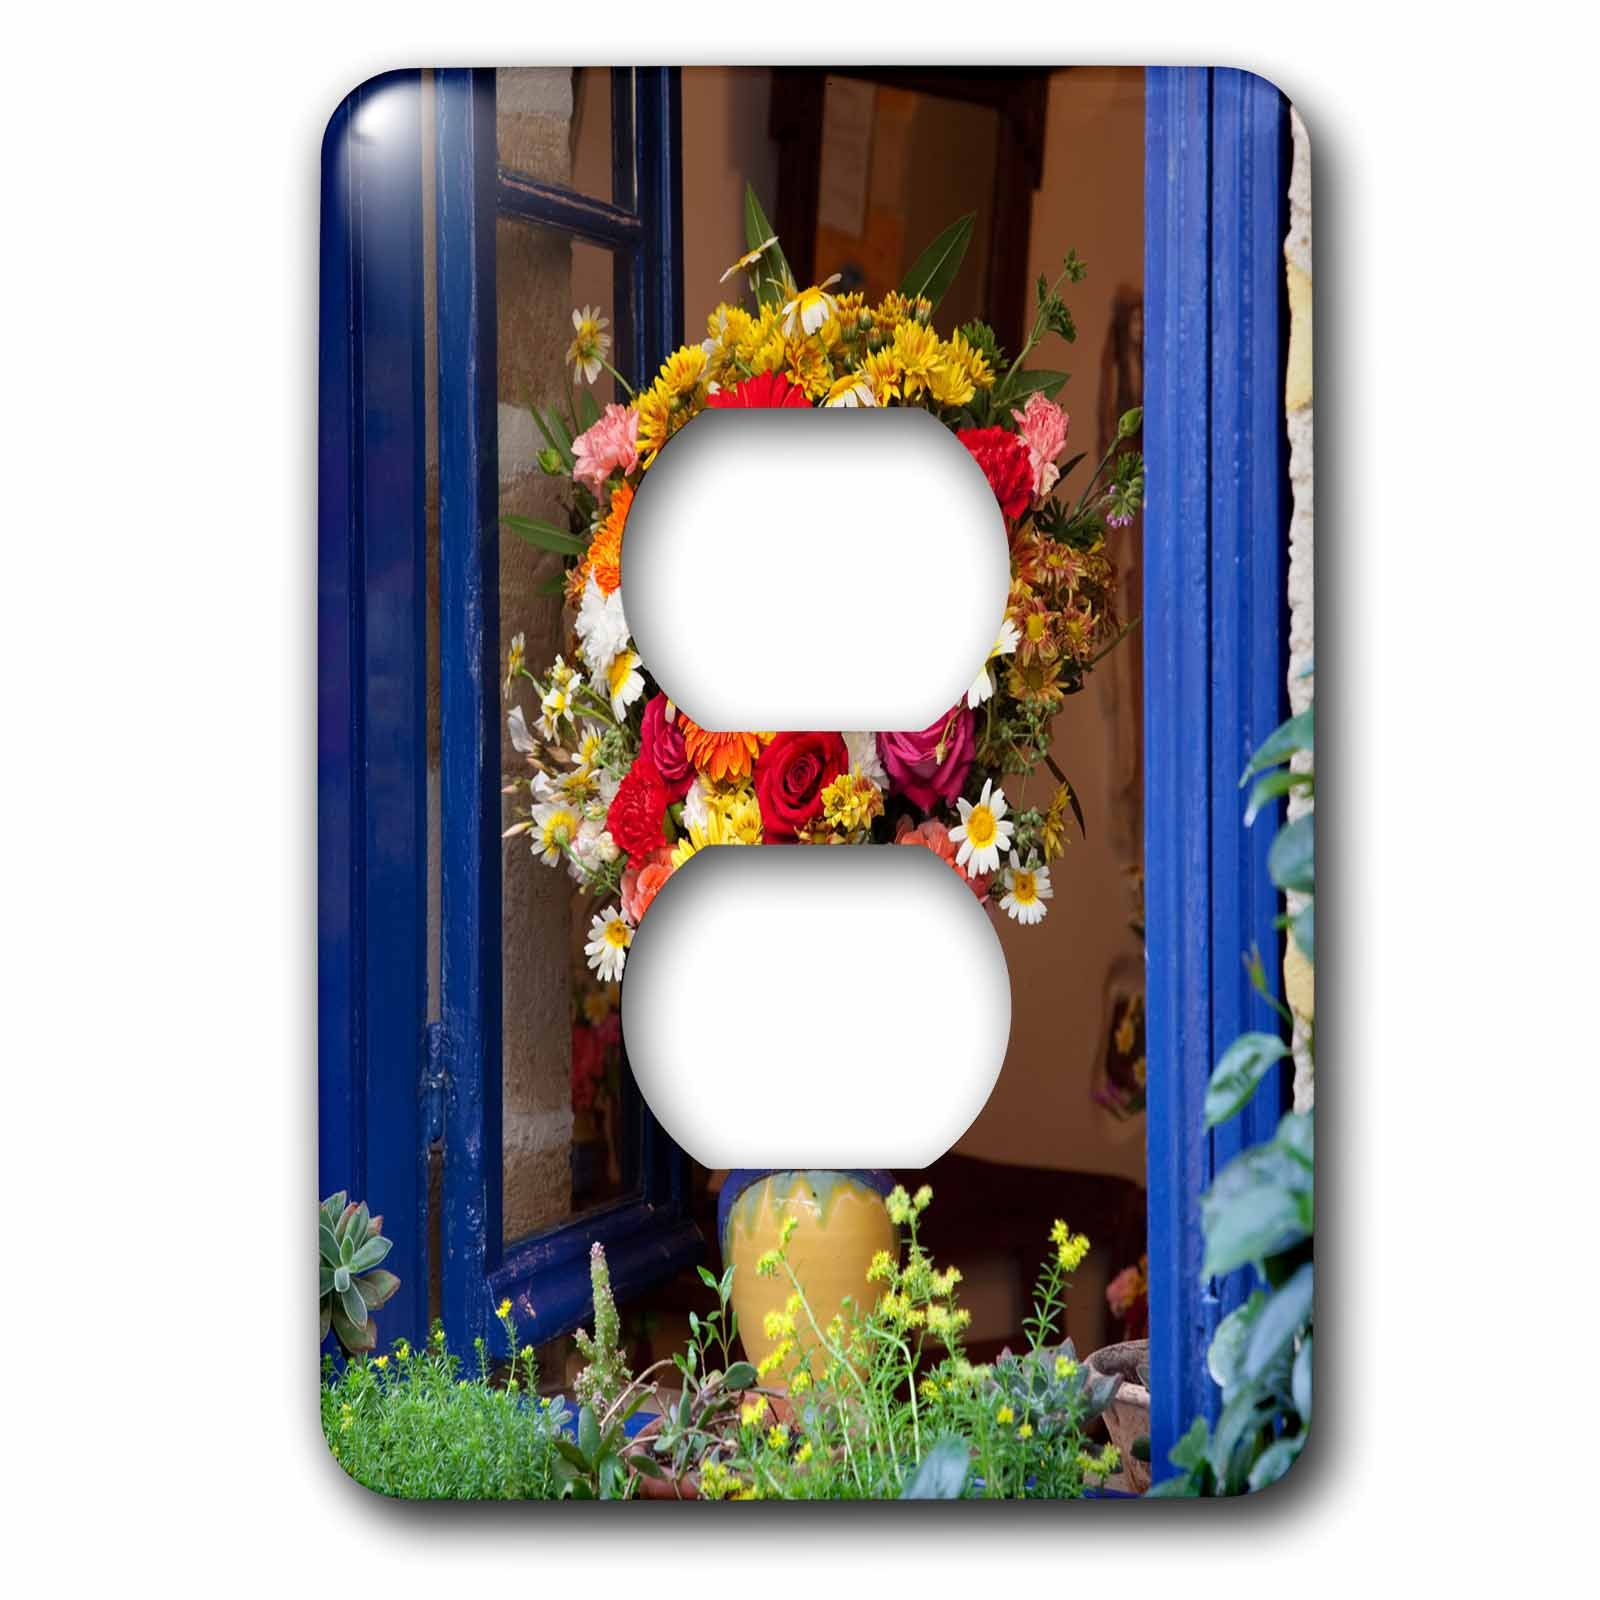 3dRose Danita Delimont - Flowers - Greece, Crete, Window with flowers - Light Switch Covers - 2 plug outlet cover (lsp_277435_6)